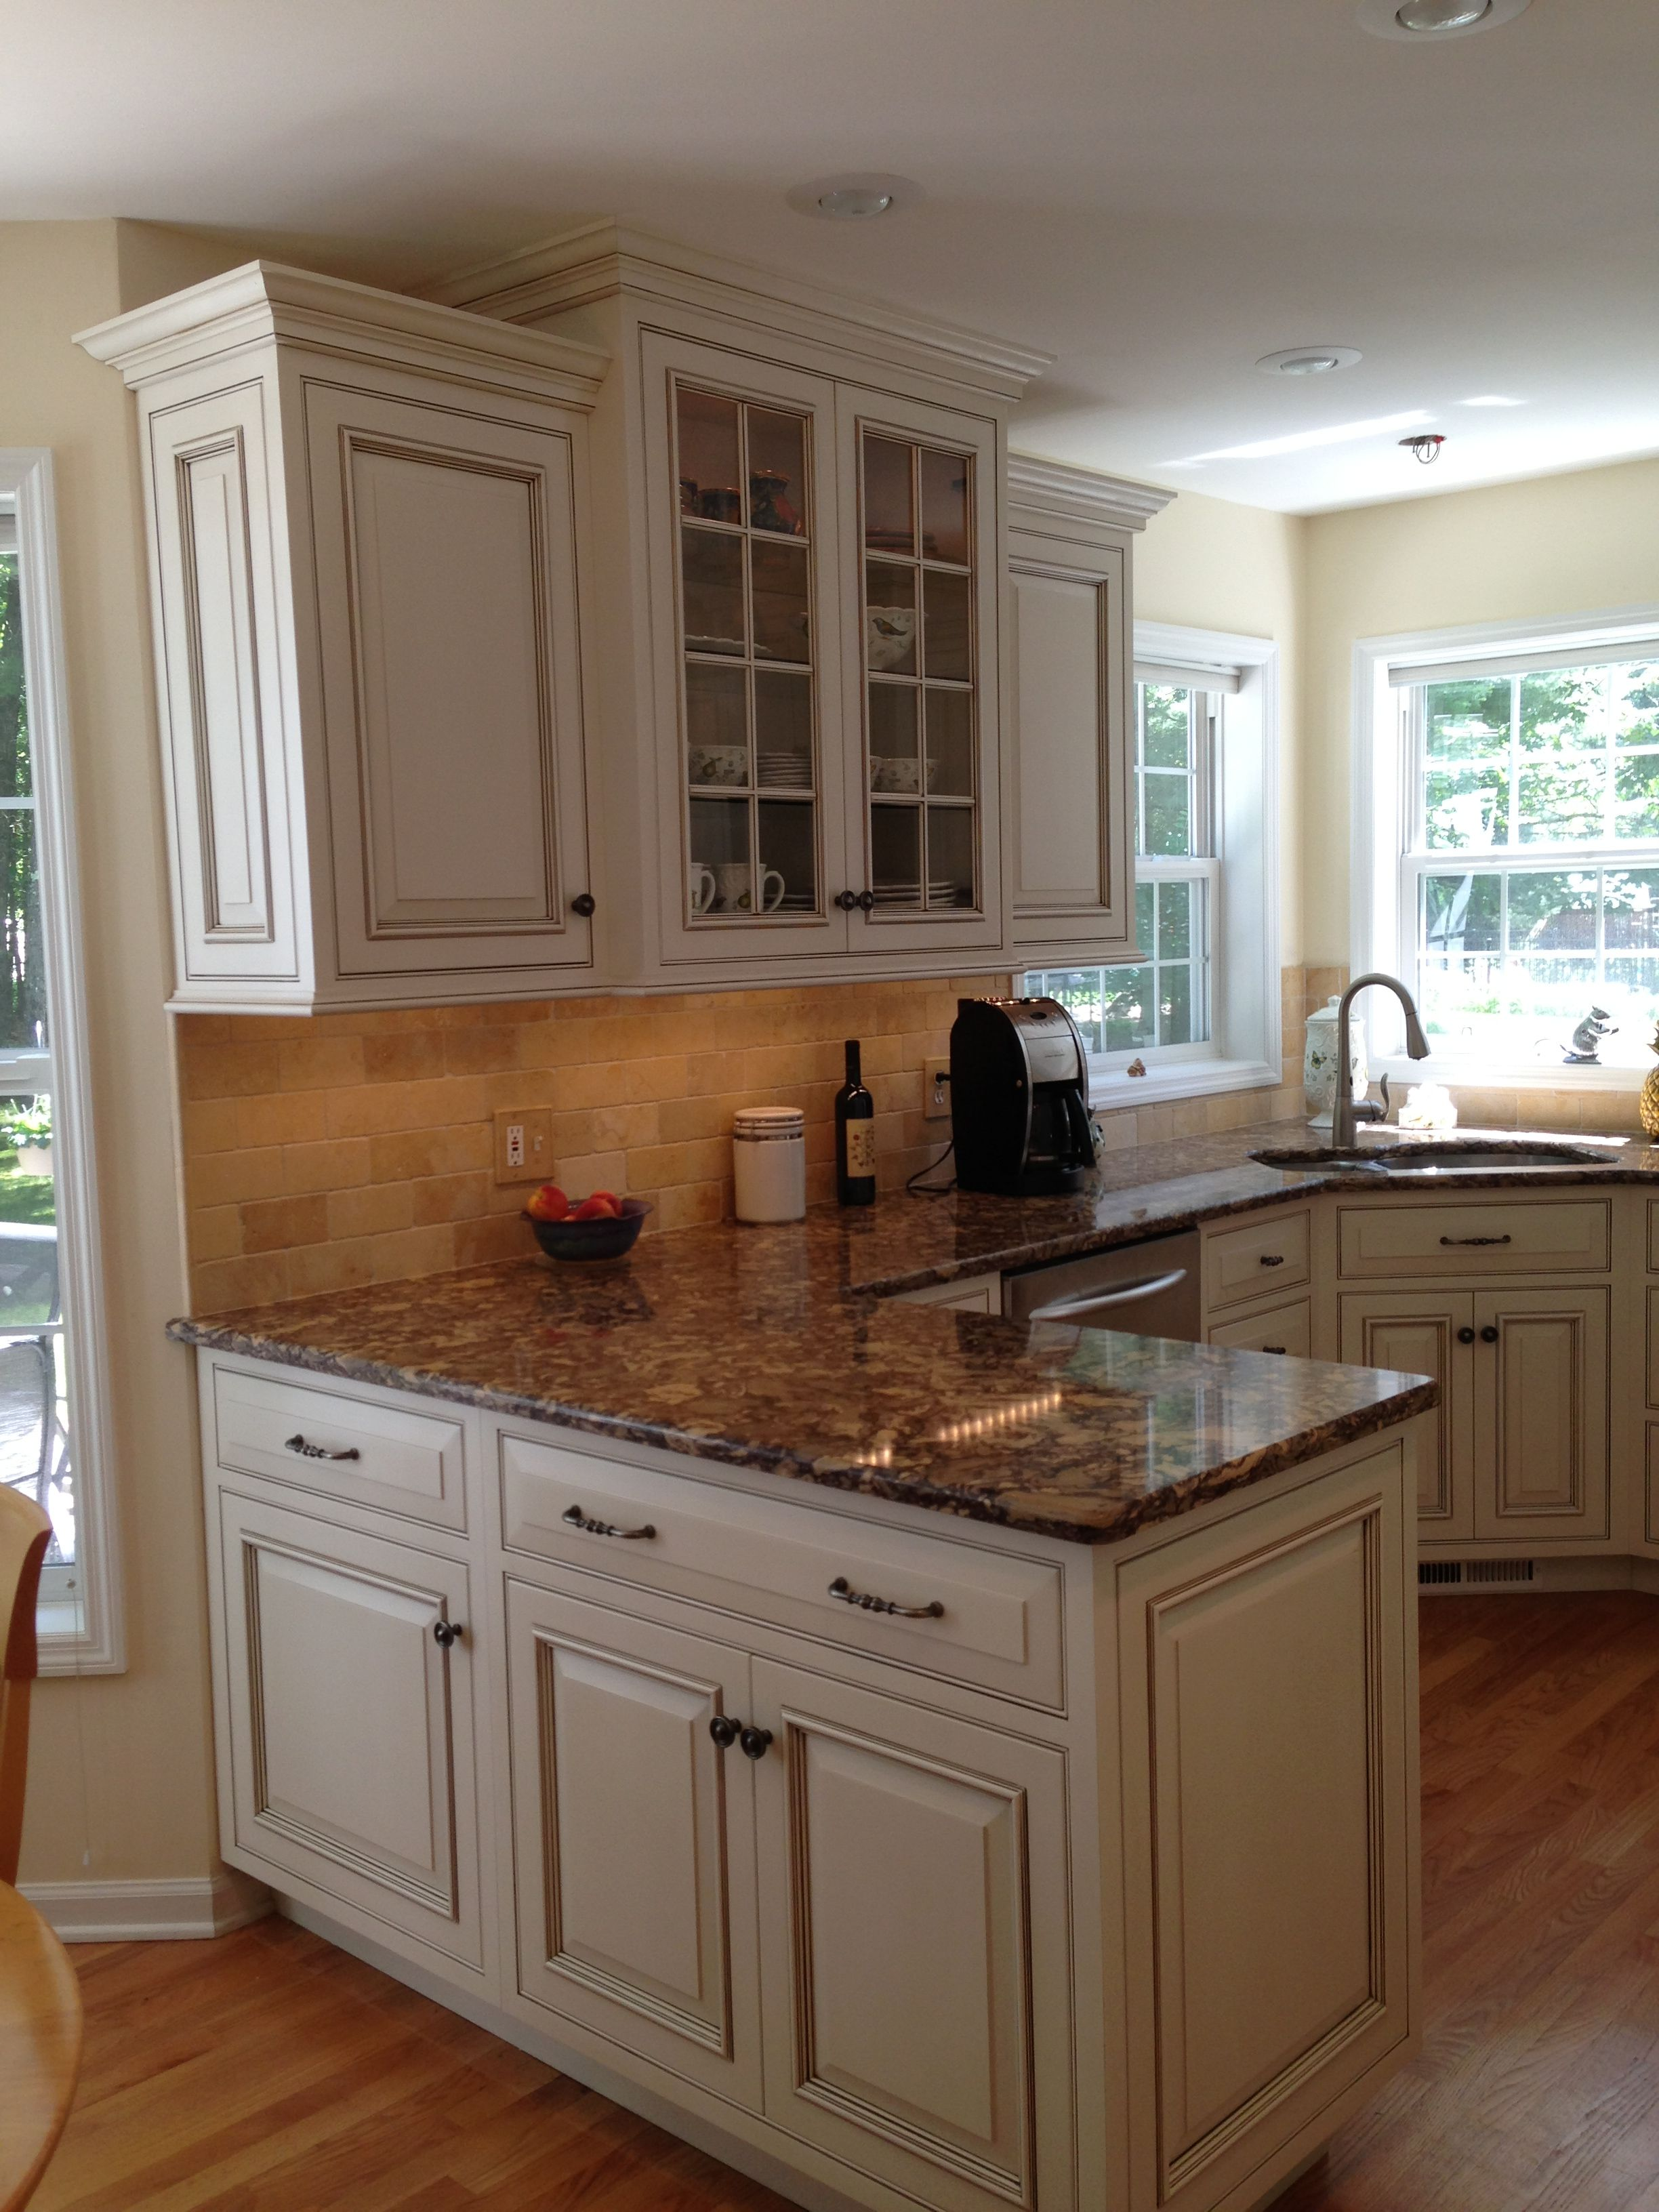 Custom inset door cabinets in antique white with glaze for See kitchen designs